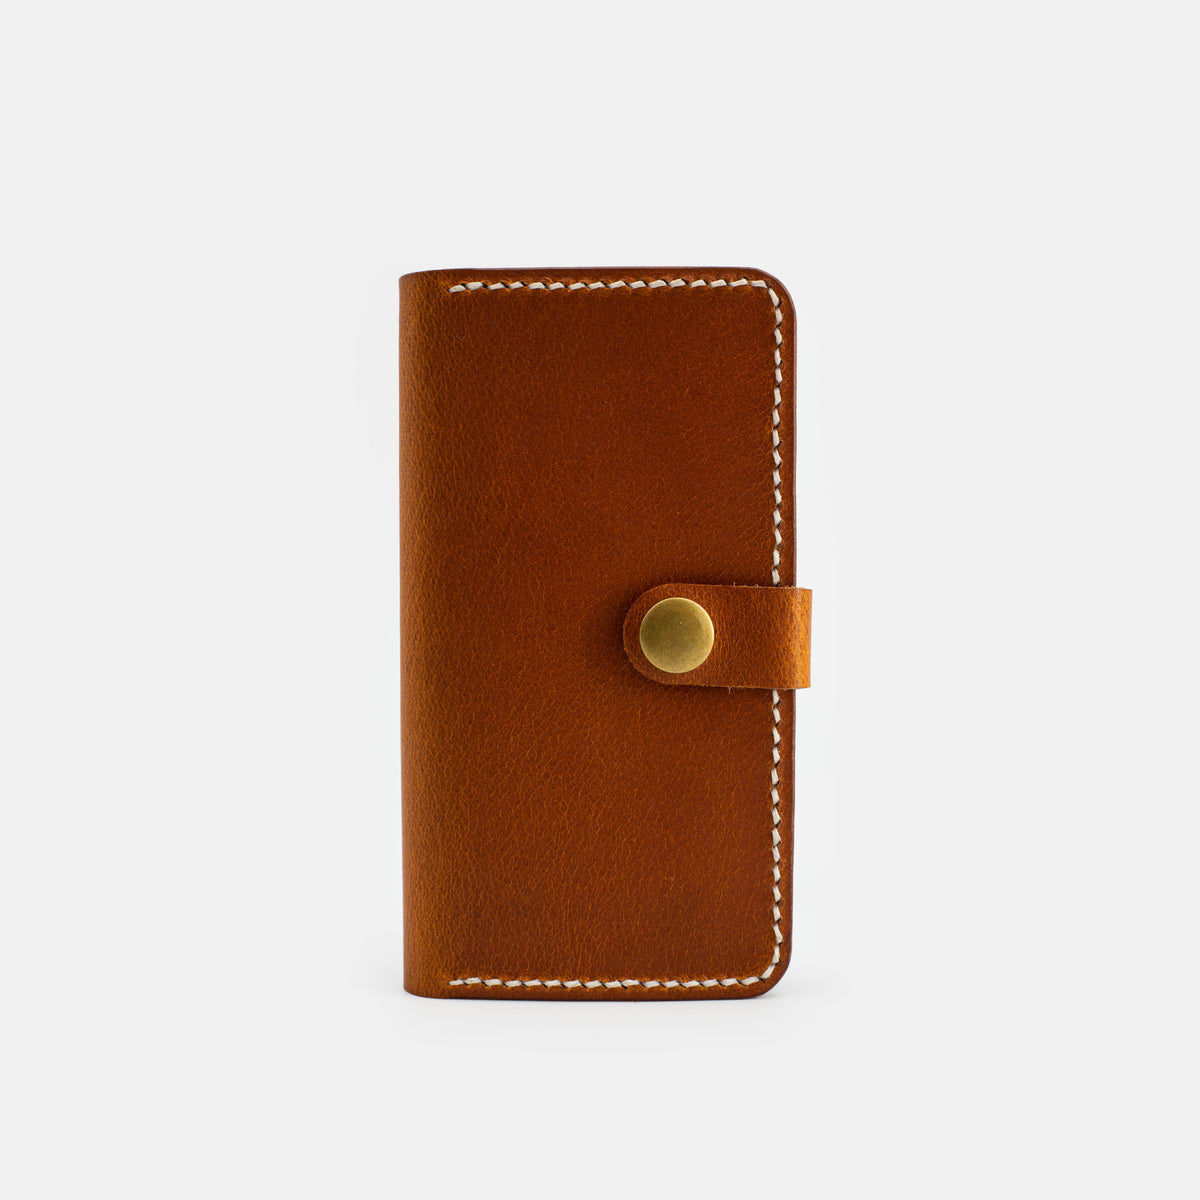 Wallet Case Tan Brown - RYAN London